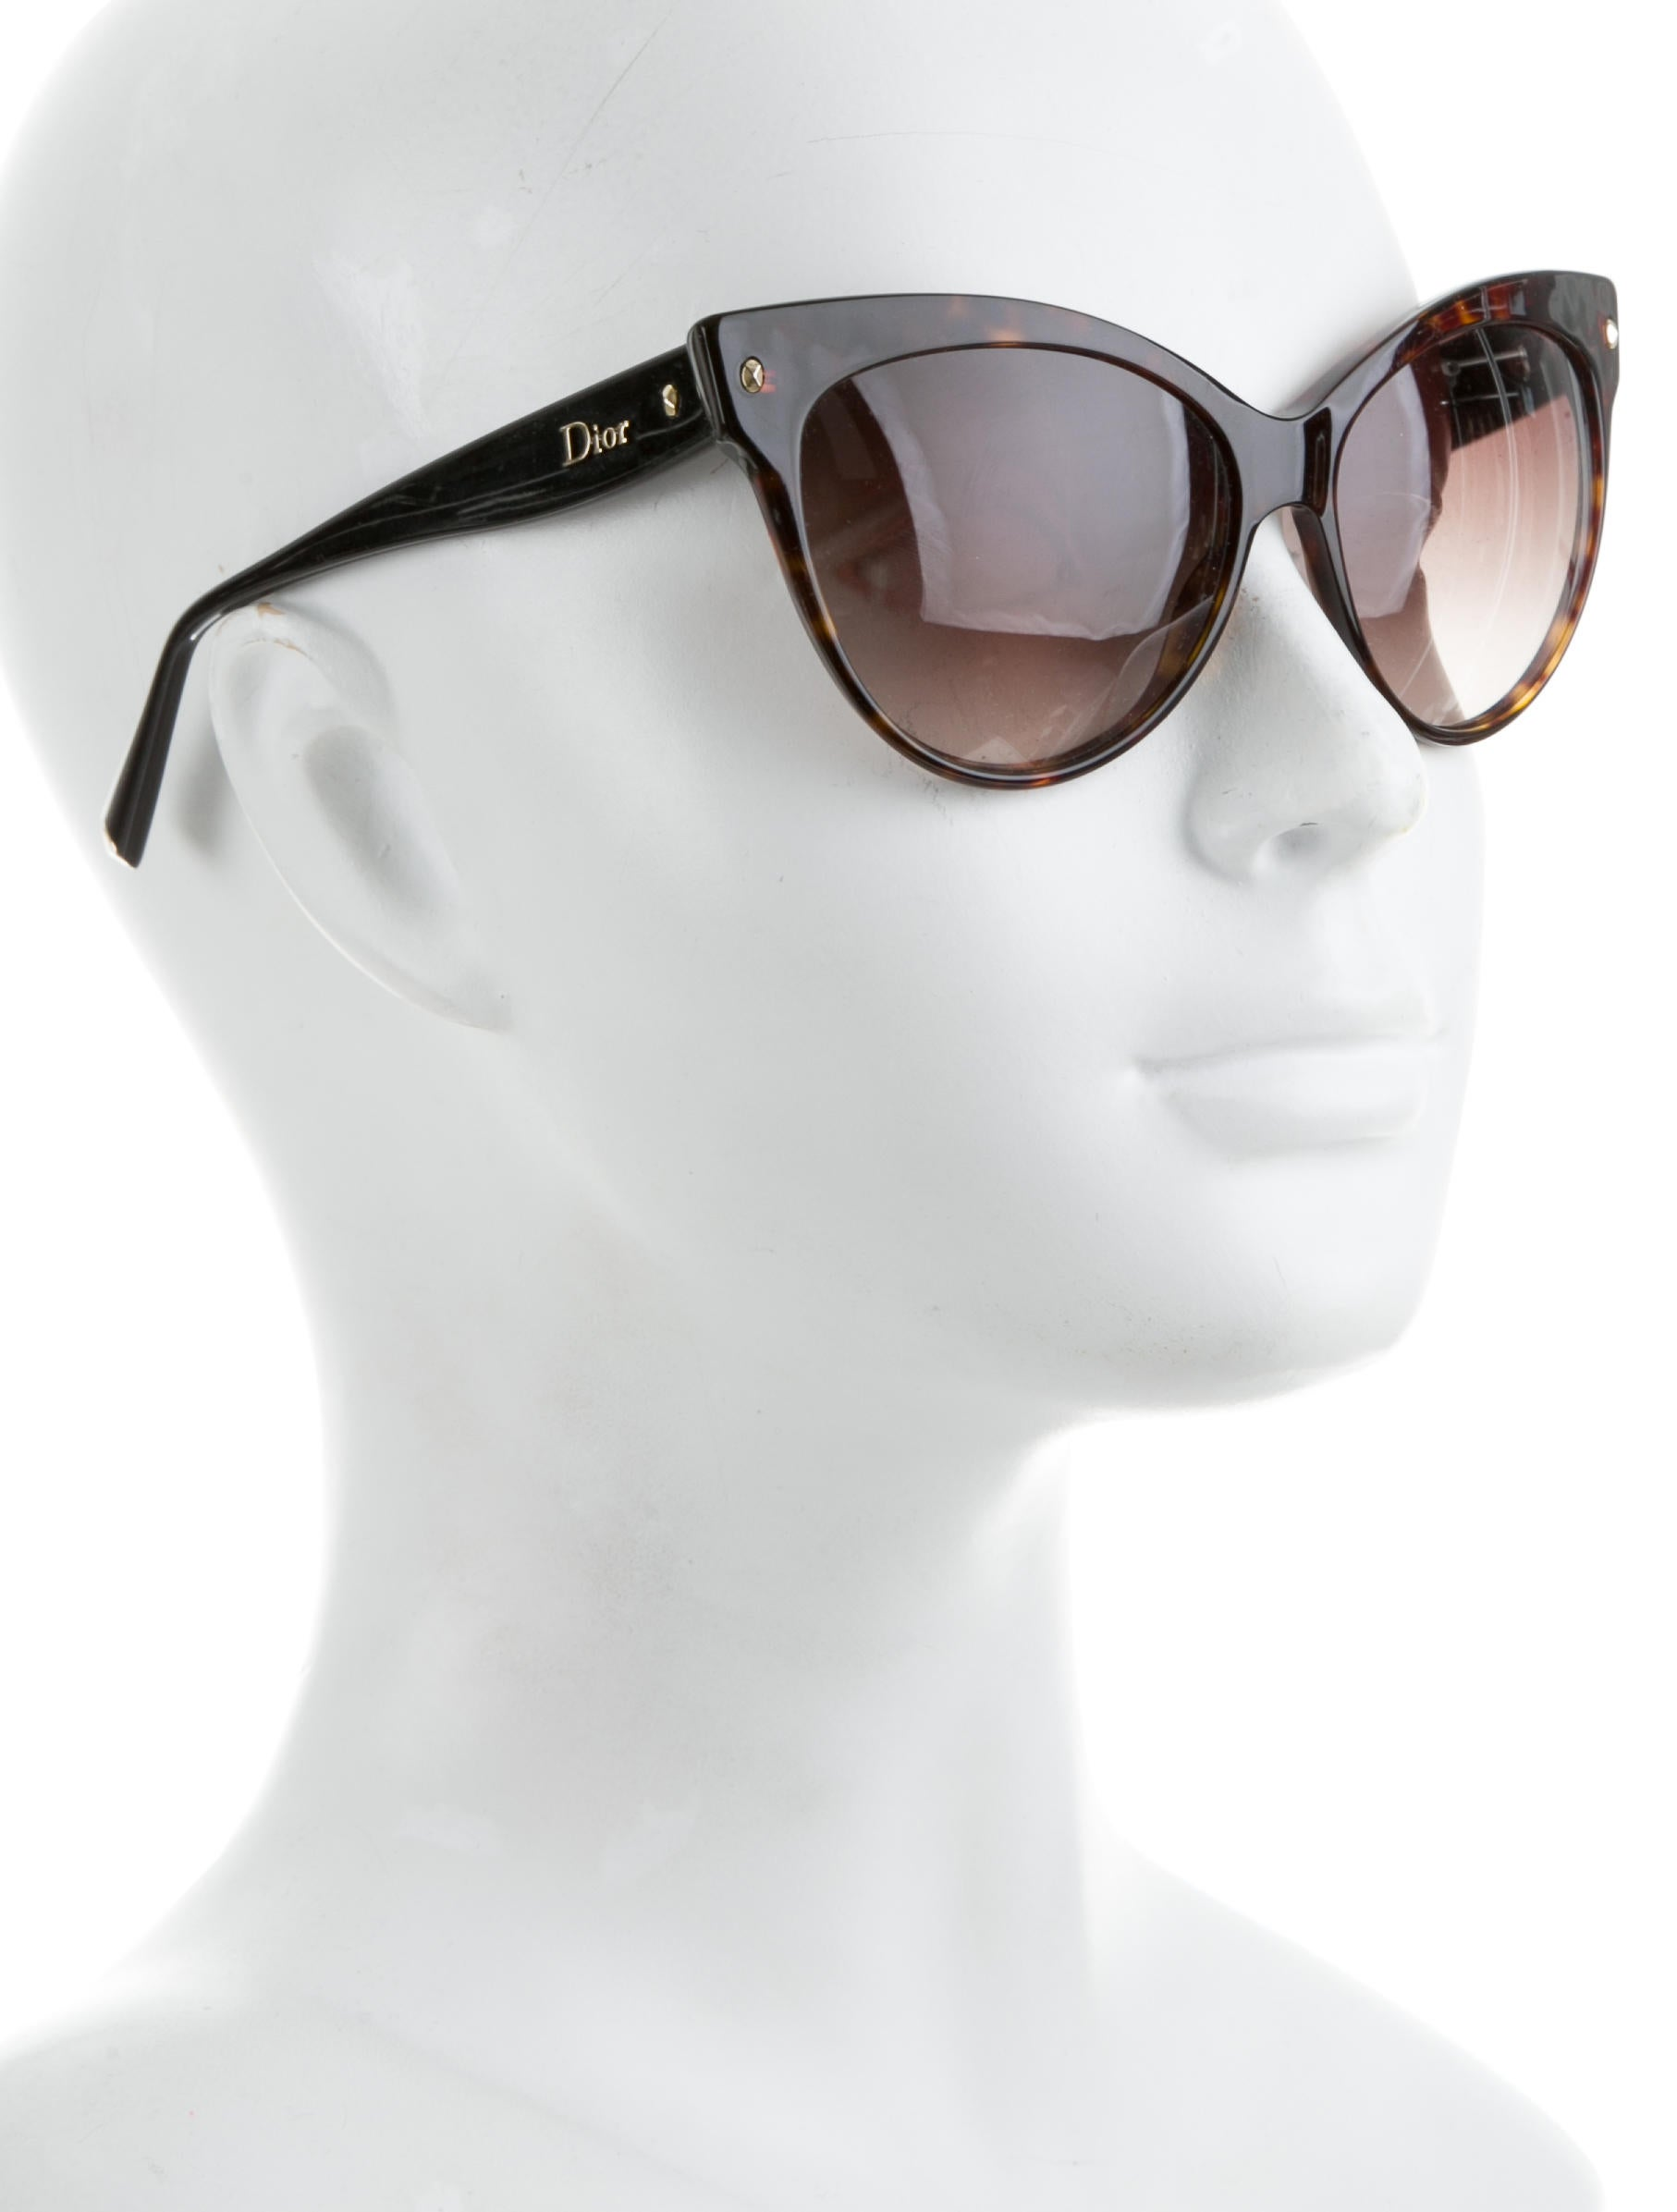 3ec3ccf105 Christian Dior Les Marquises Cat-Eye Sunglasses - Accessories ...